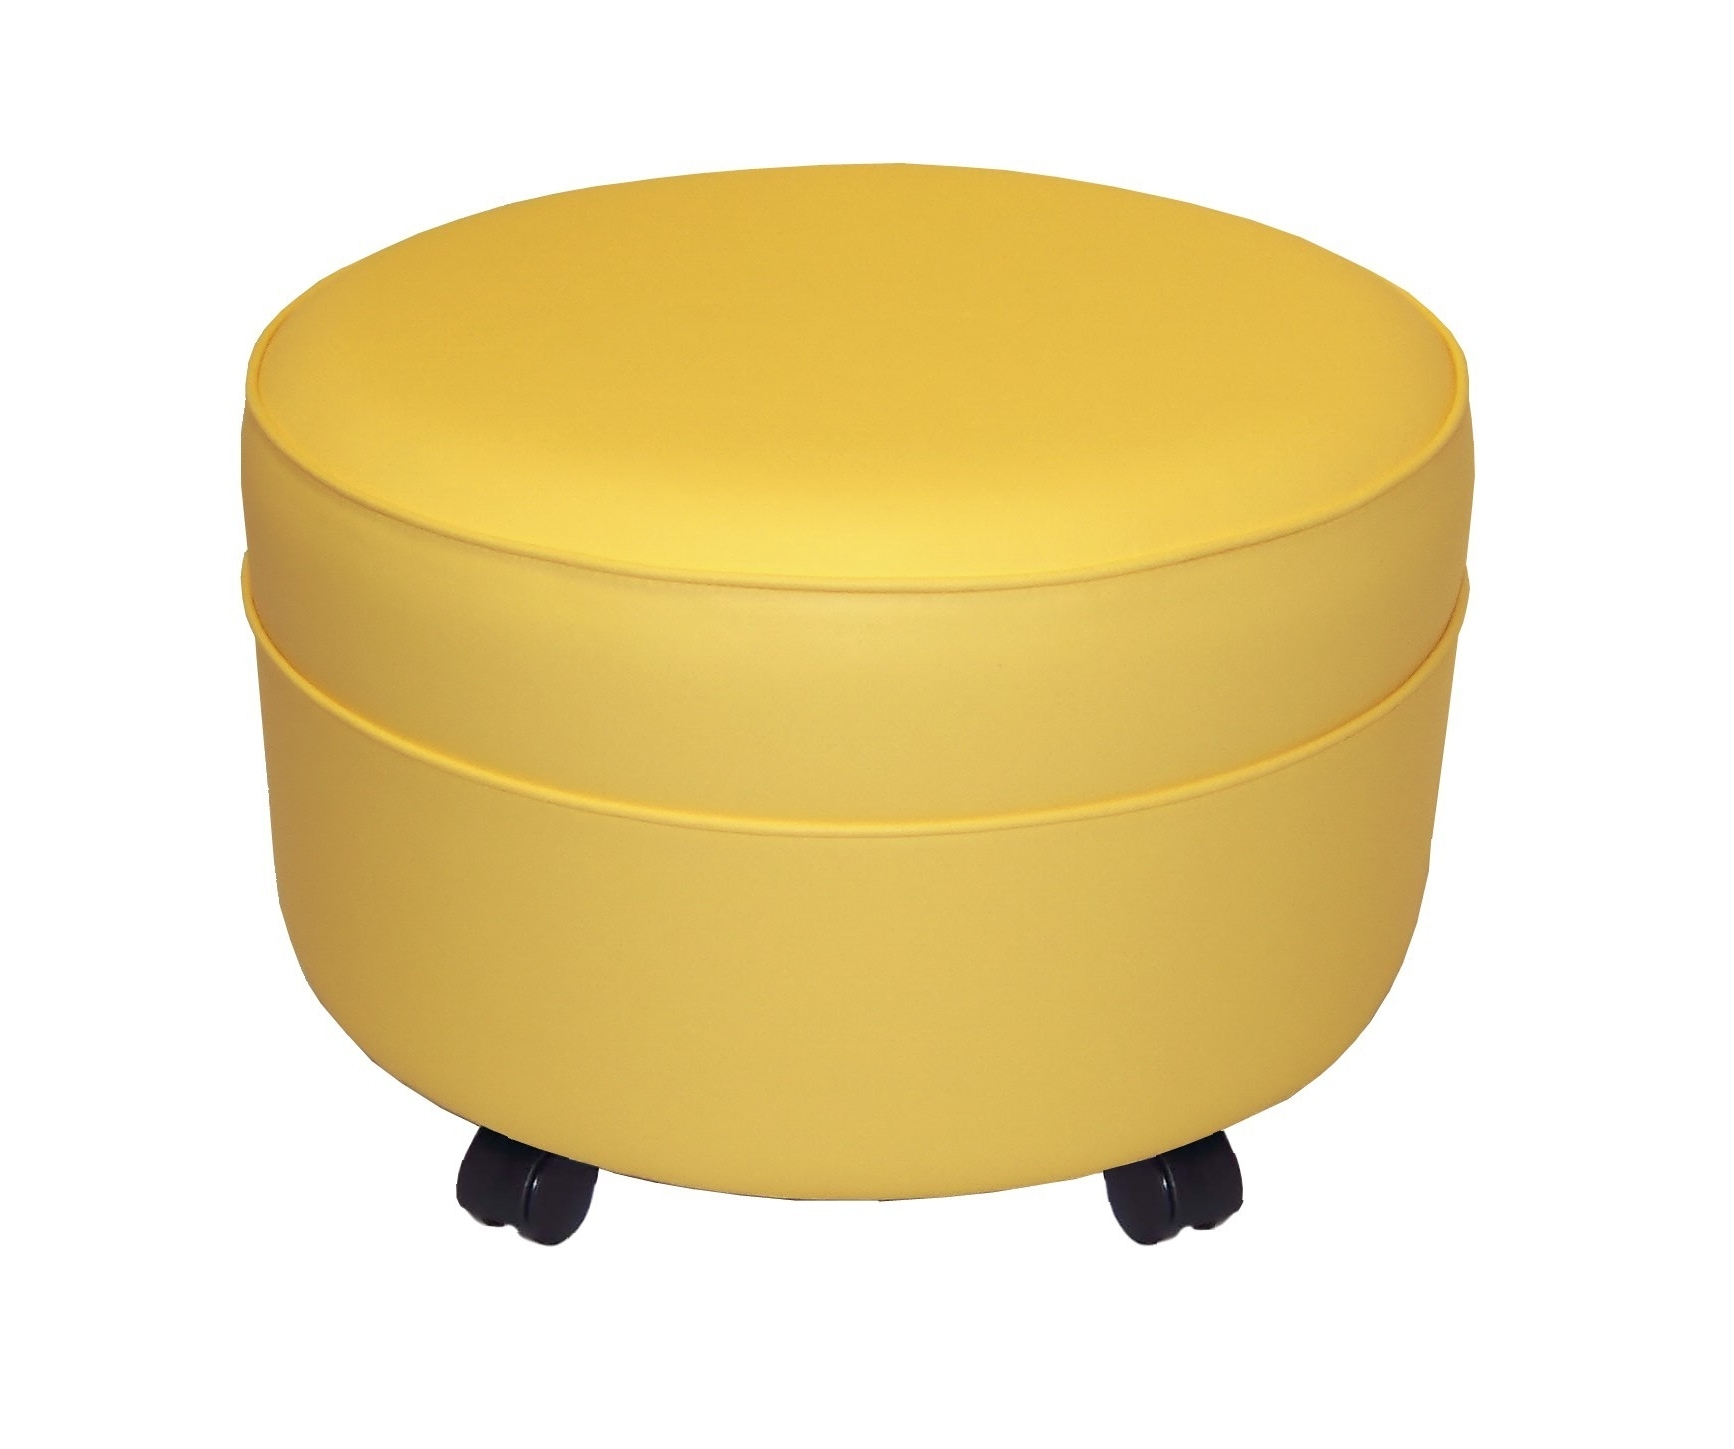 Best And Newest Choosing Ottoman With Wheels – Printableboutique In Ottomans With Wheels (View 12 of 15)